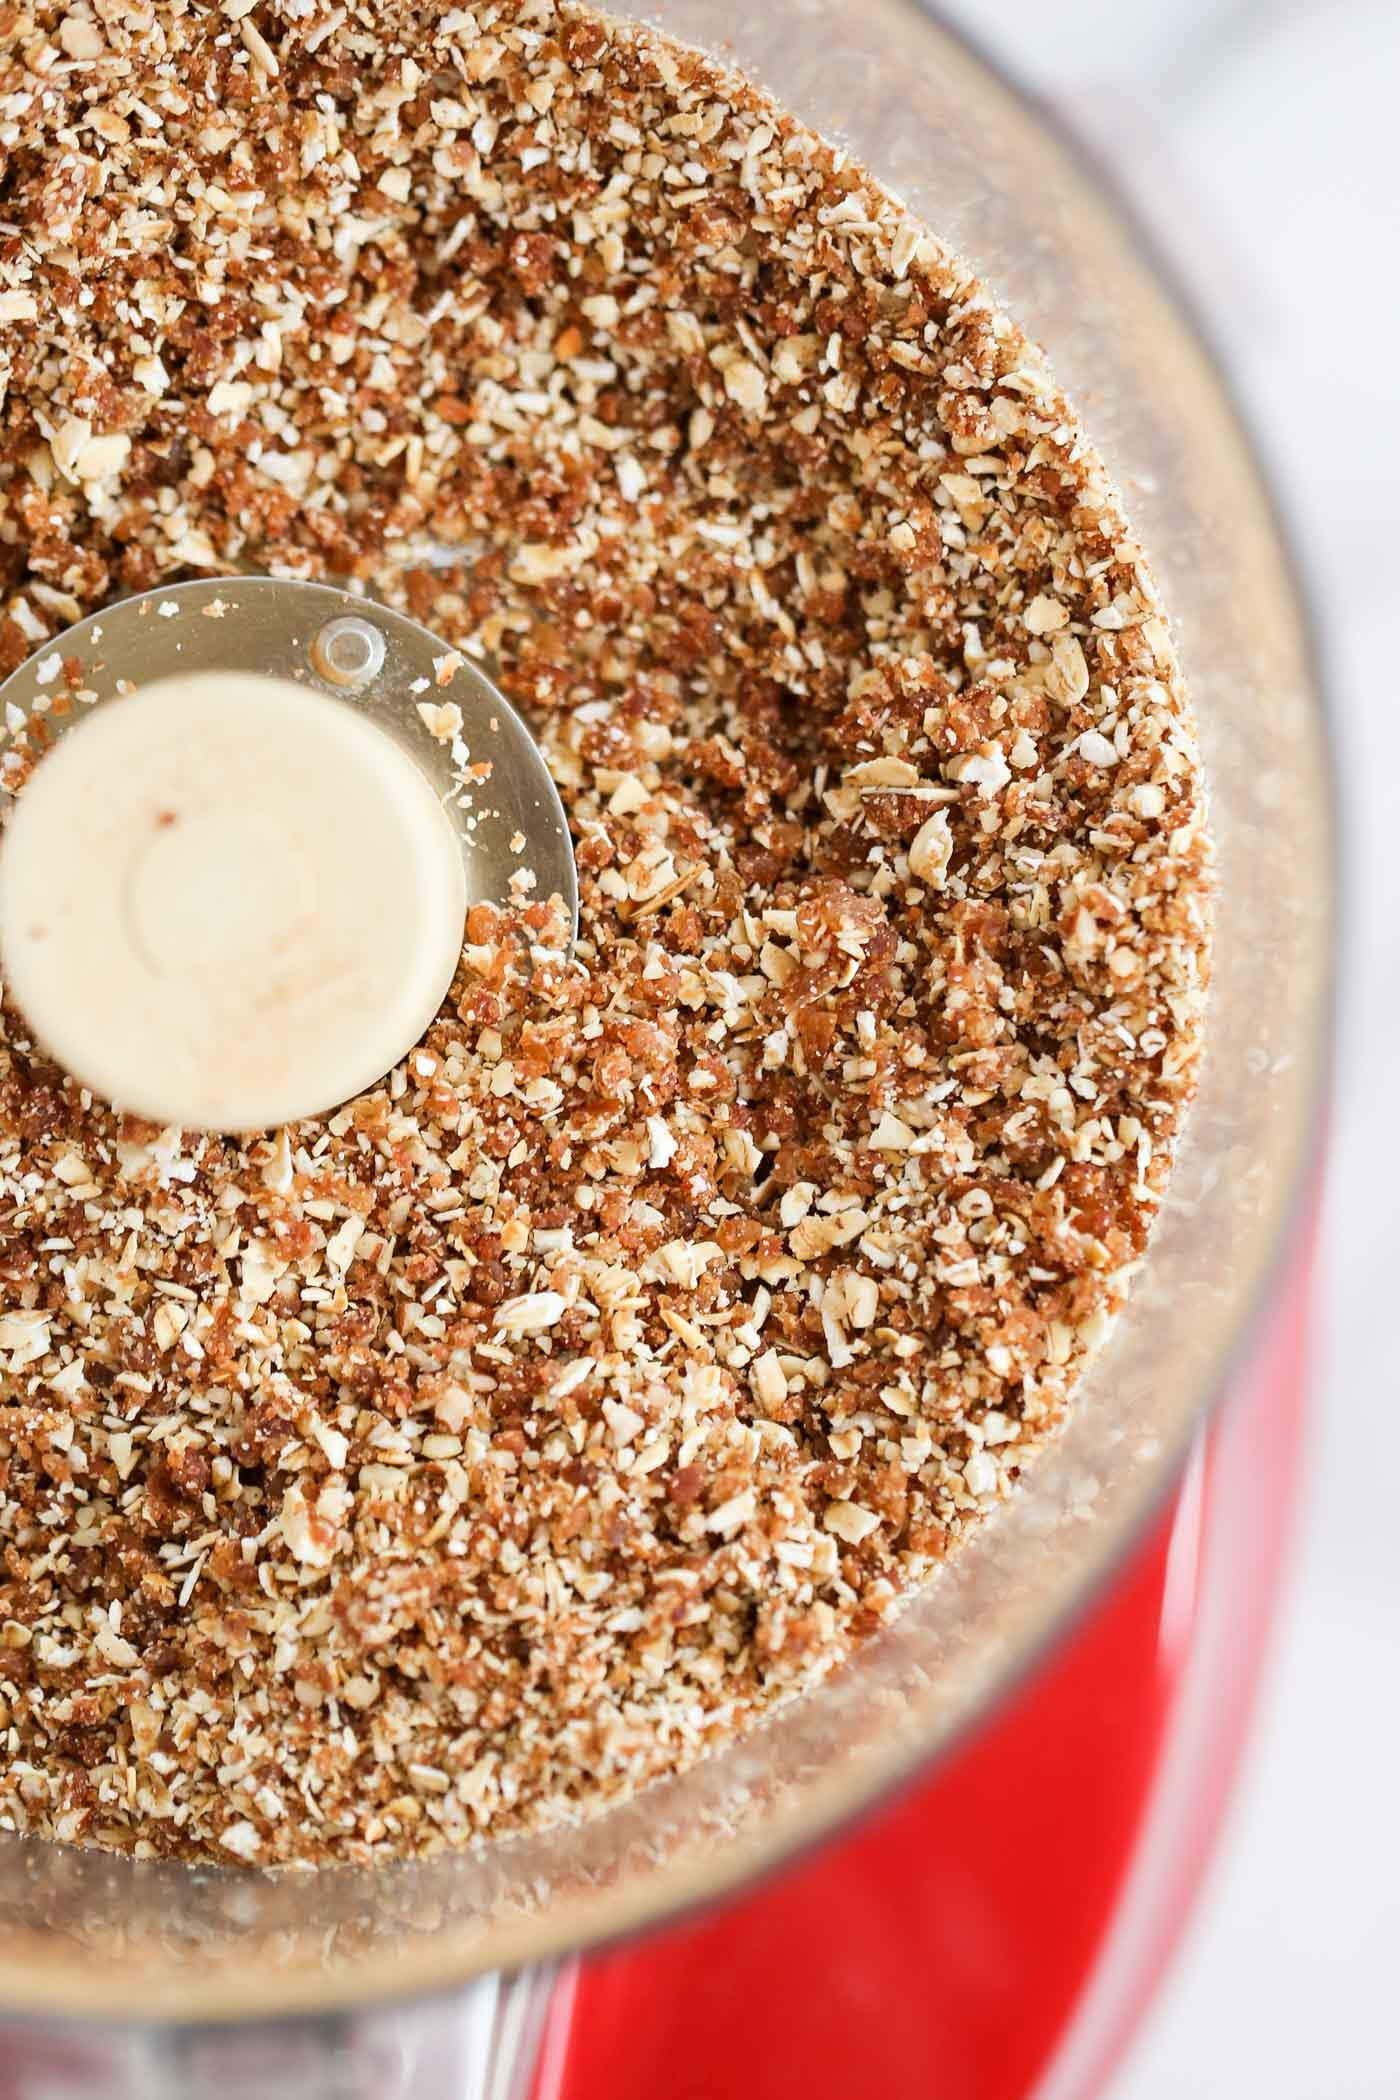 The PERFECT oat-pecan crumble topping -- used on top of yogurt, in a breakfast parfait or even on top of a smoothie bowl!